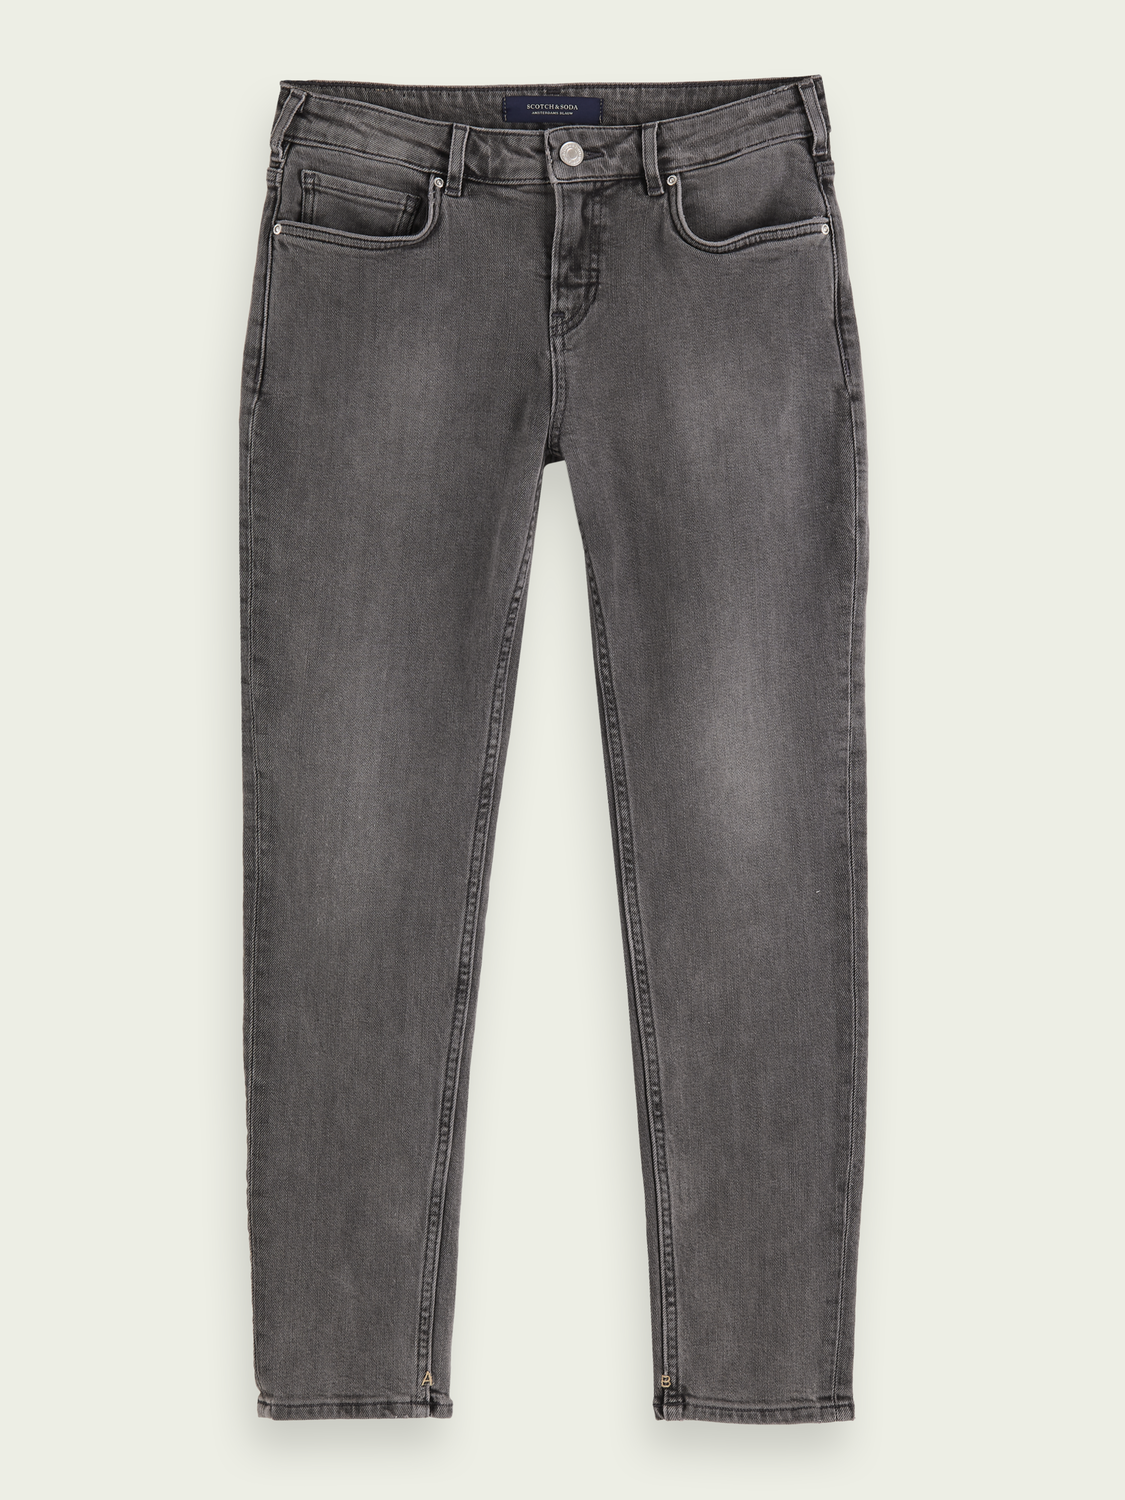 Dames The Keeper mid rise jeans met smalle pijpen – Sugar Grey